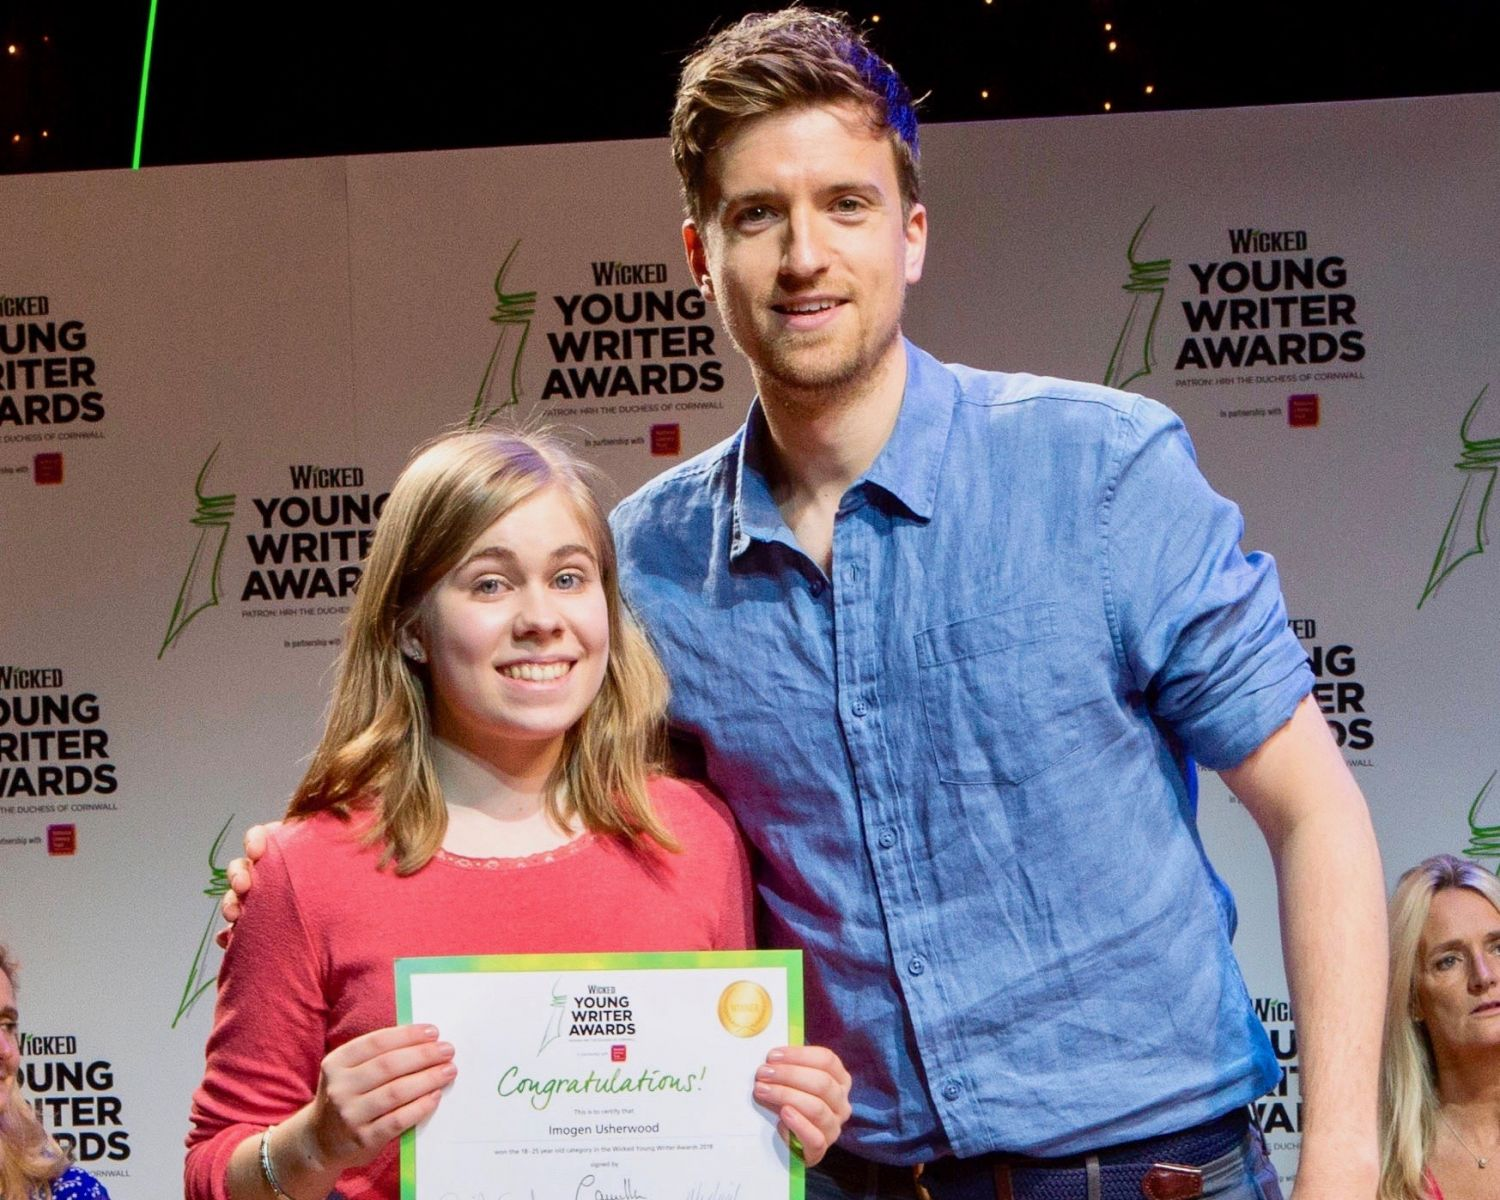 18-25 Category Winner Imogen Usherwood with host Greg James - Wicked Young Writer Awards 2018 Photo Credit: Ellie Kurttz